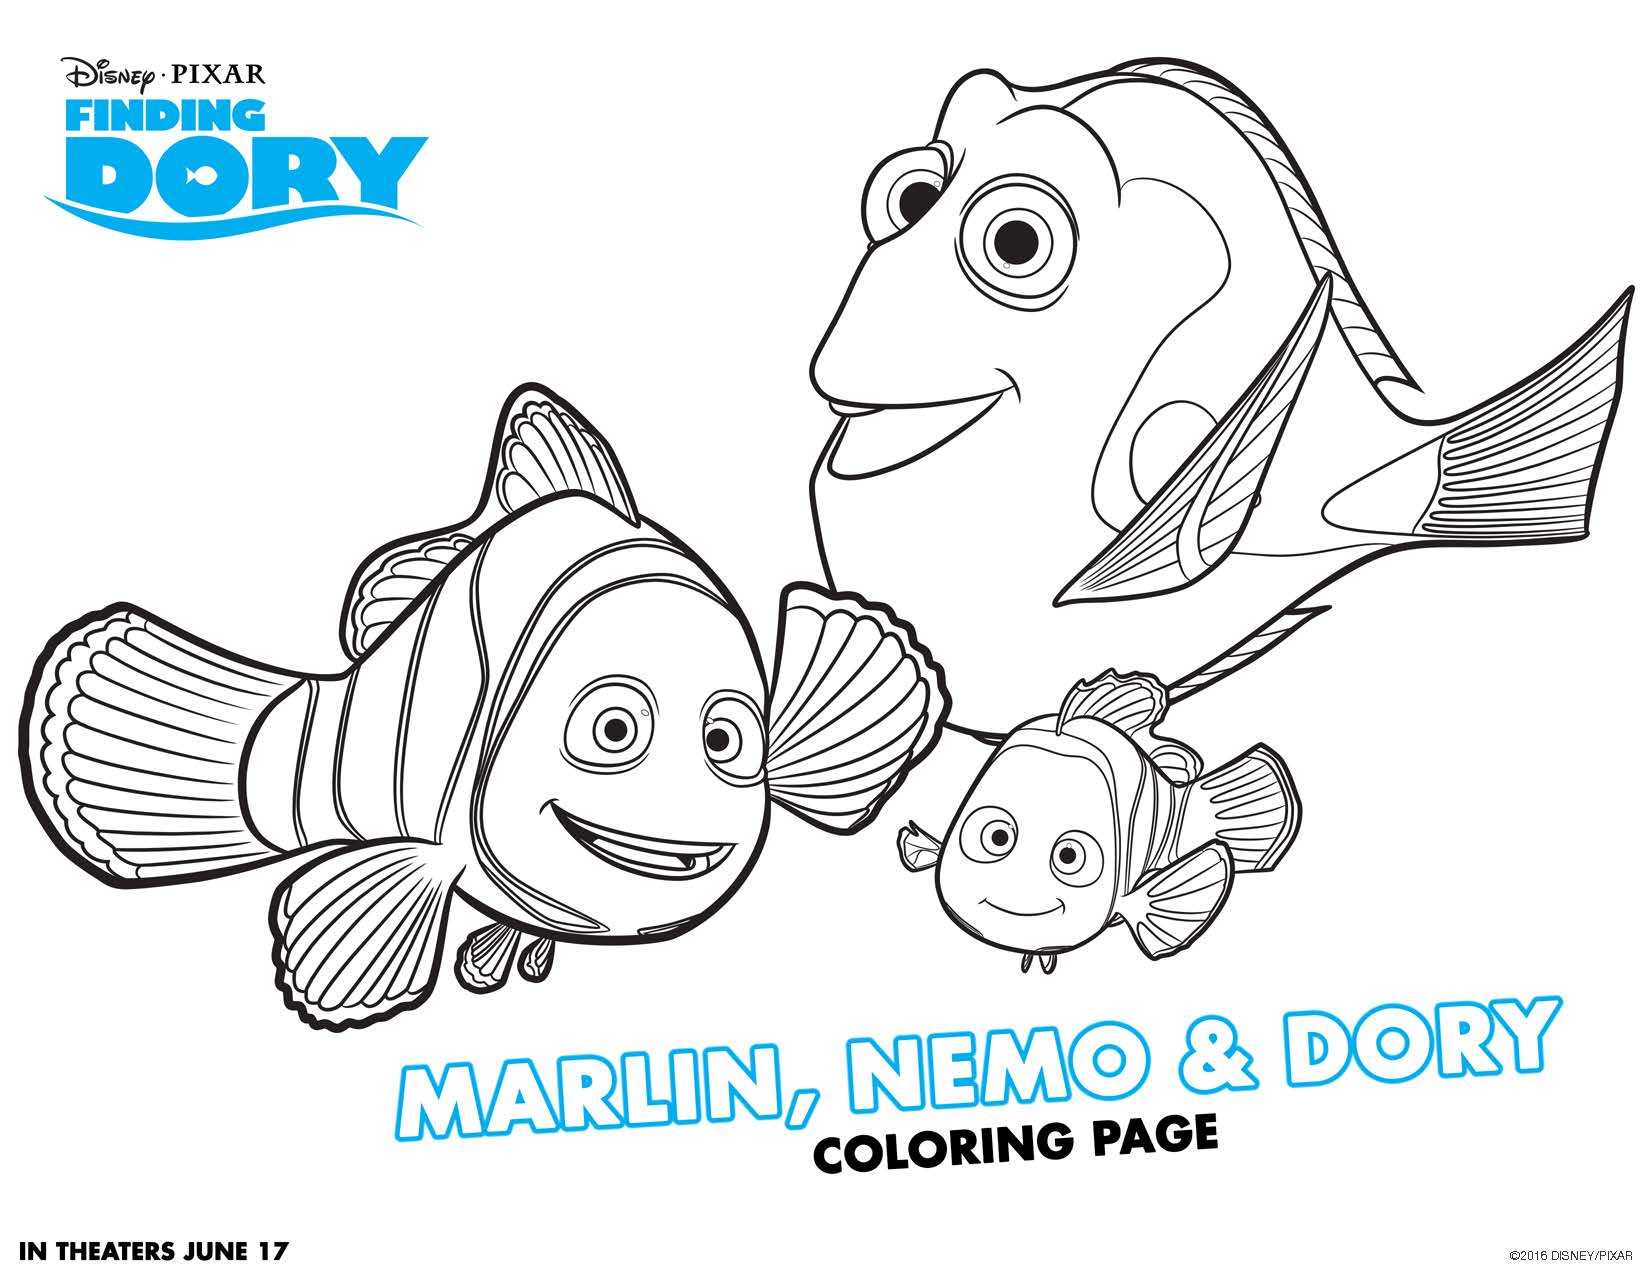 Finding Dory movie printable coloring page activity for kids. This is so cute! Great for getting ready for the movie to come out this summer!